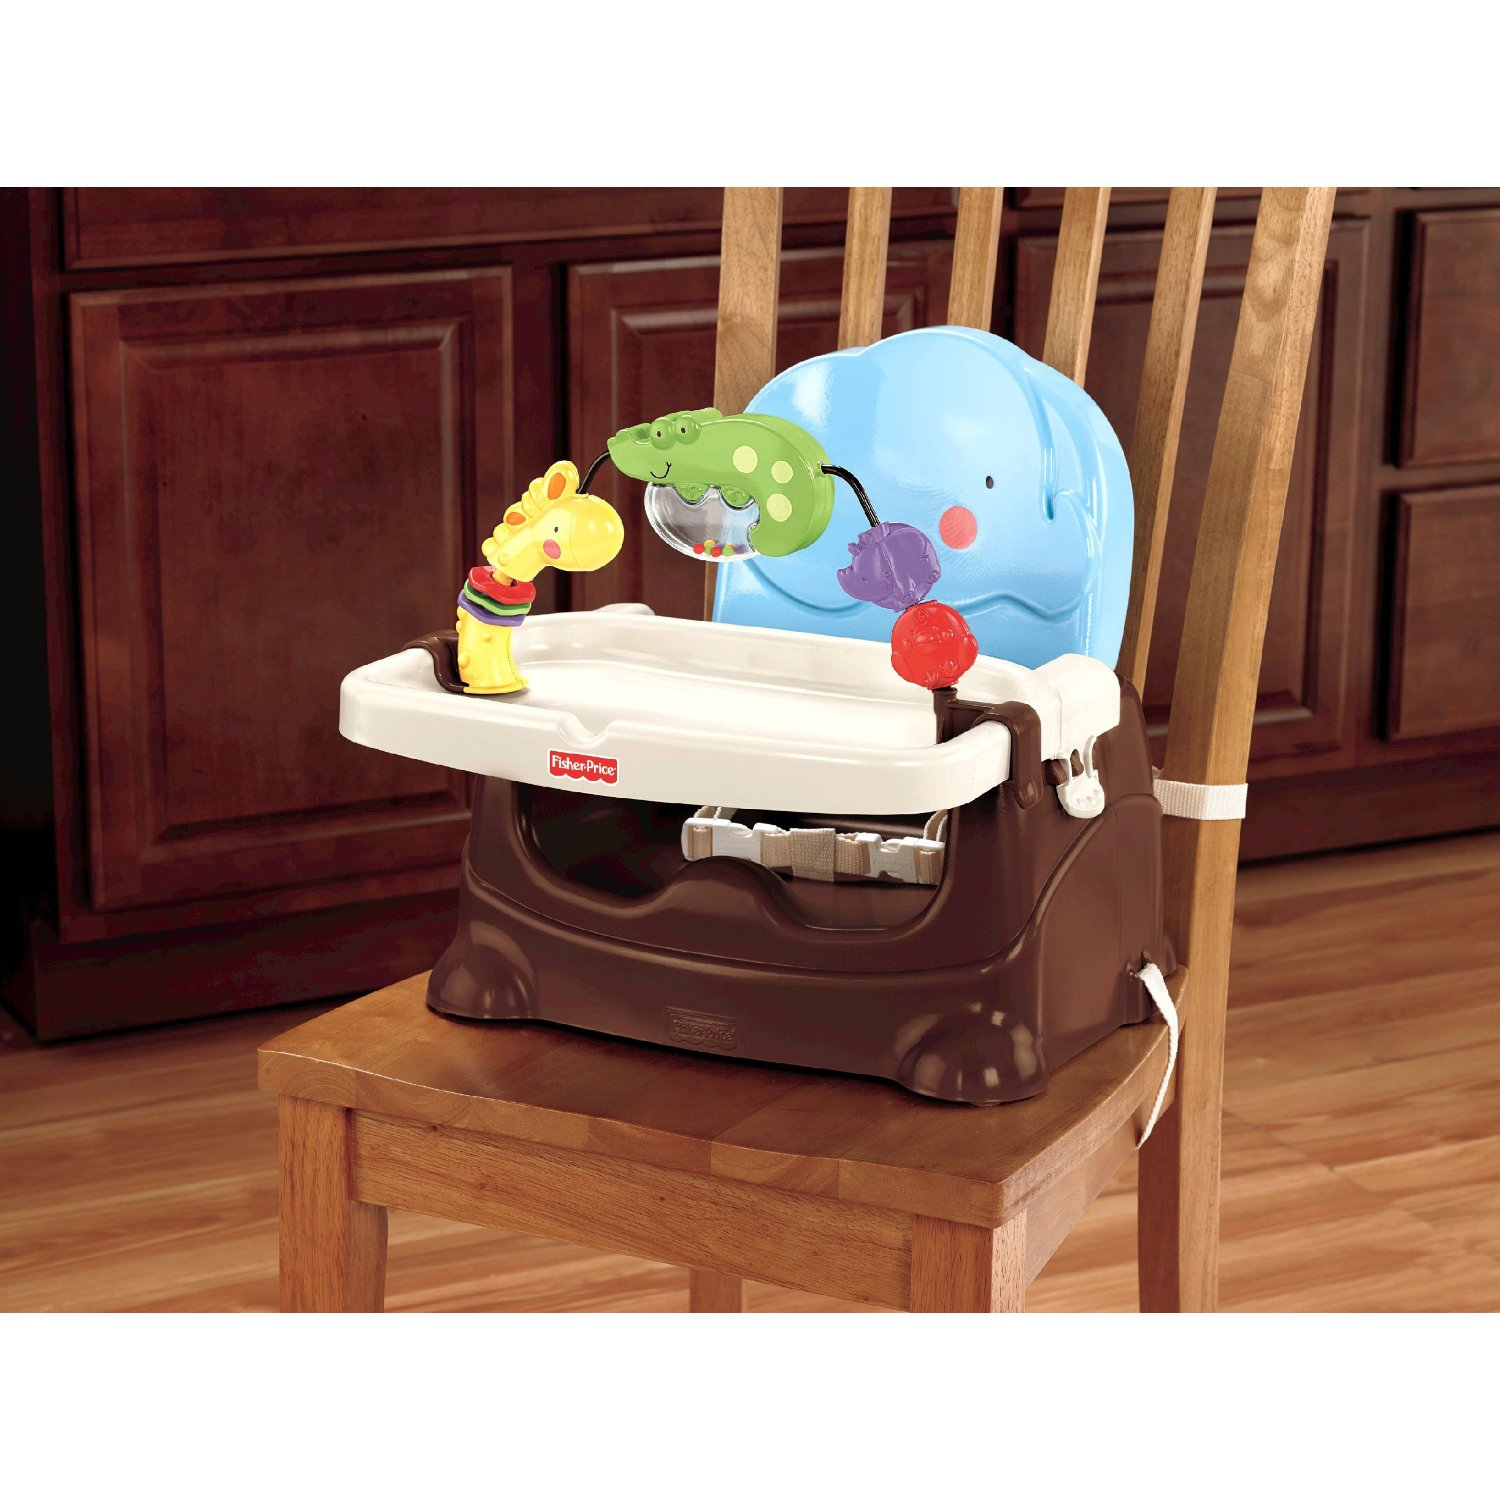 Baba G Me Fisher Price Luv U Zoo Busy Baby Booster